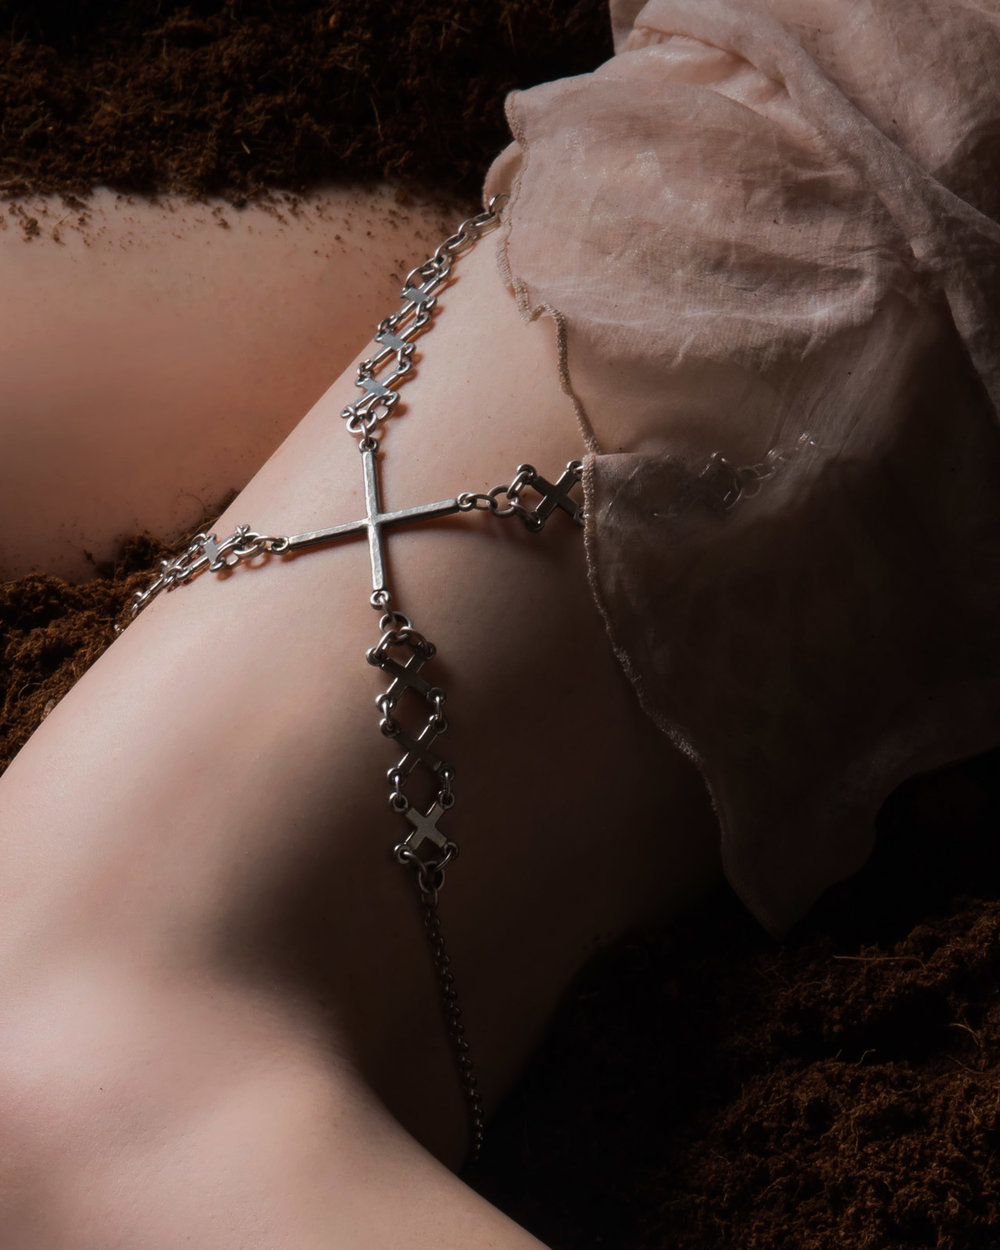 Kuoh Photography - Buried Treasure Beauty Concept - Leg